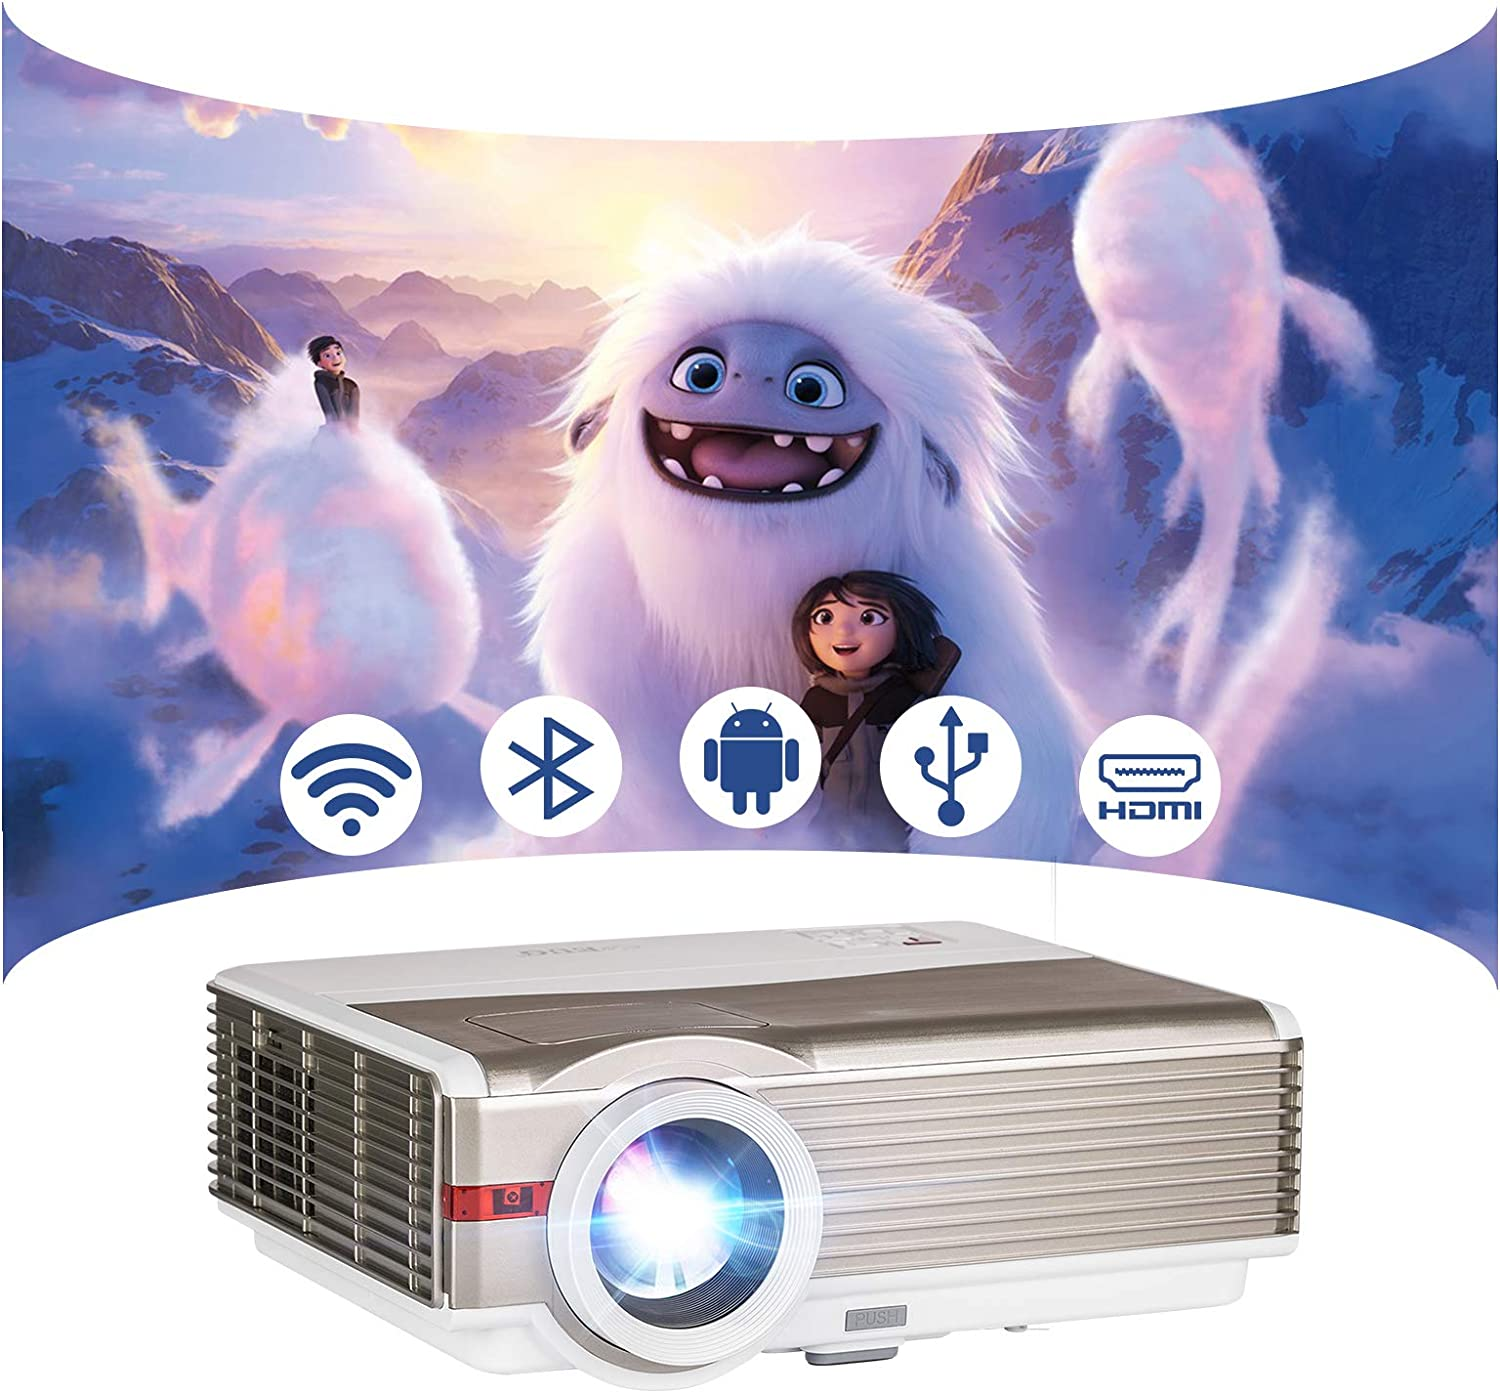 EUG LED WiFi Bluetooth Projector, Full HD 1080P Supported 5000lm High Definition HDMI Multimedia Video Projectors for Gaming Movie Home Theater Wireless Comptible with iPhone Smartphone USB